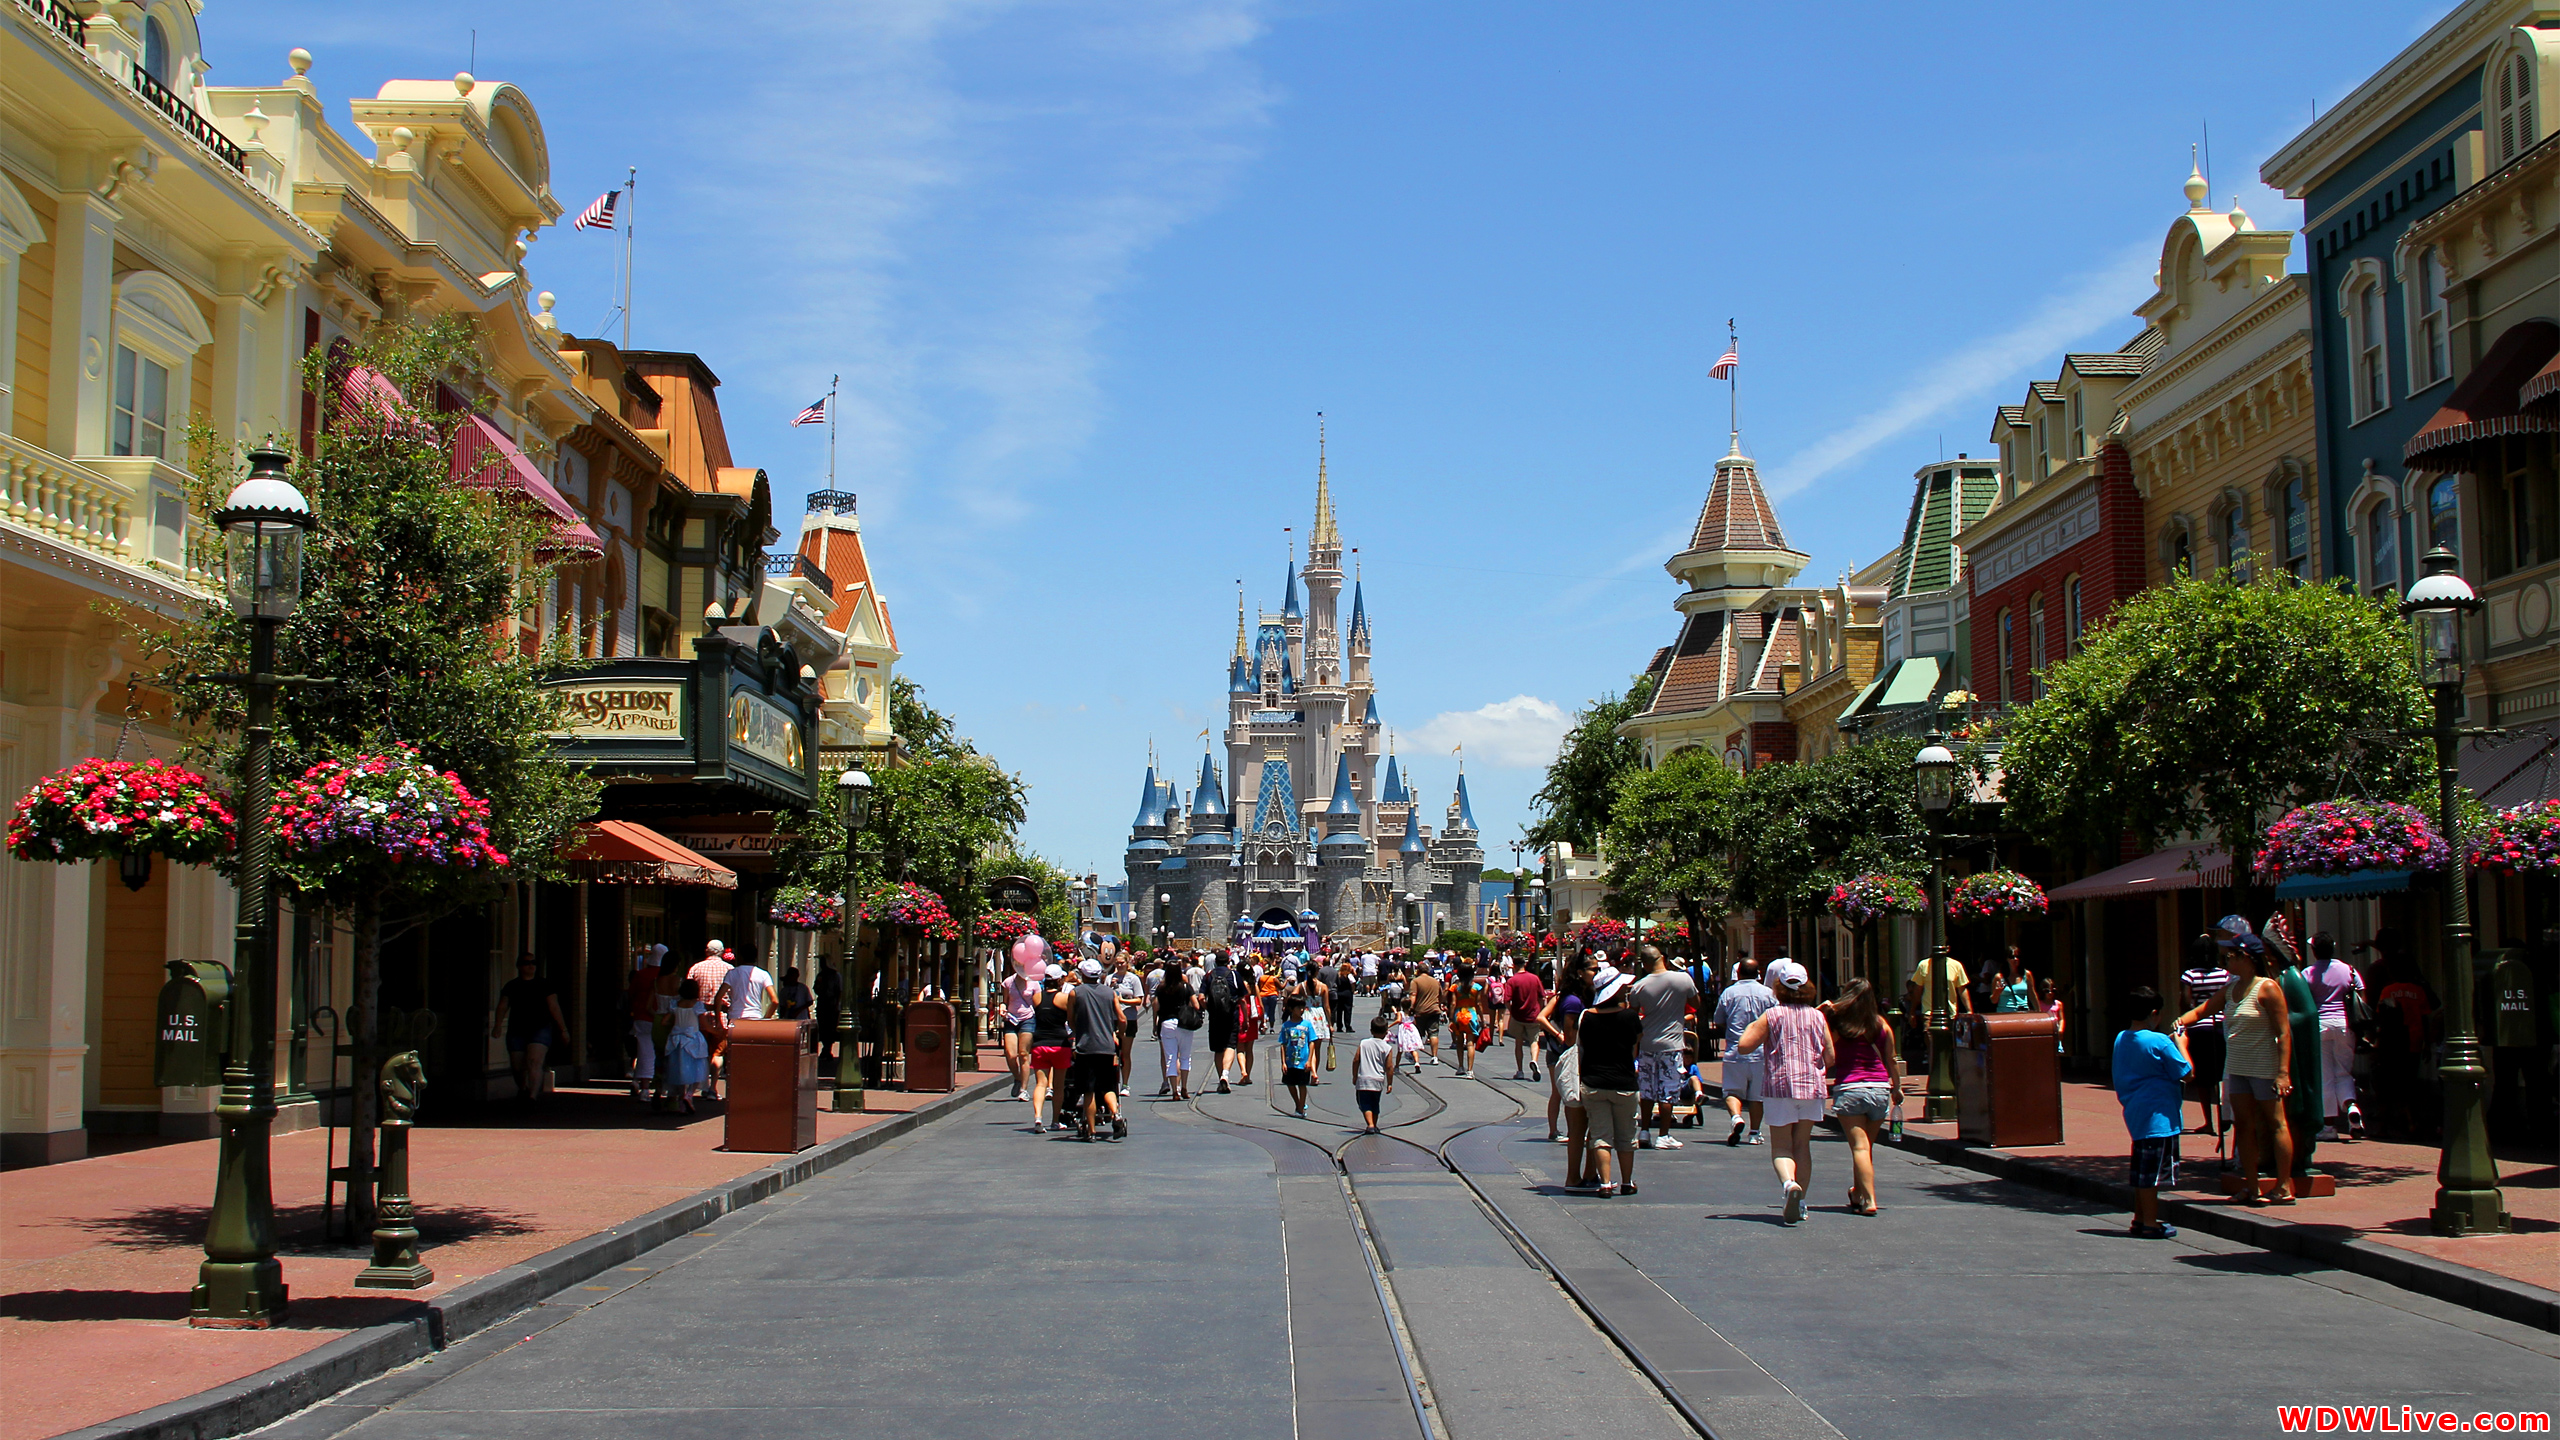 Disney world iphone wallpaper tumblr - Filename Tumblr_static_classic Main Street Photo 1 9 Jpg